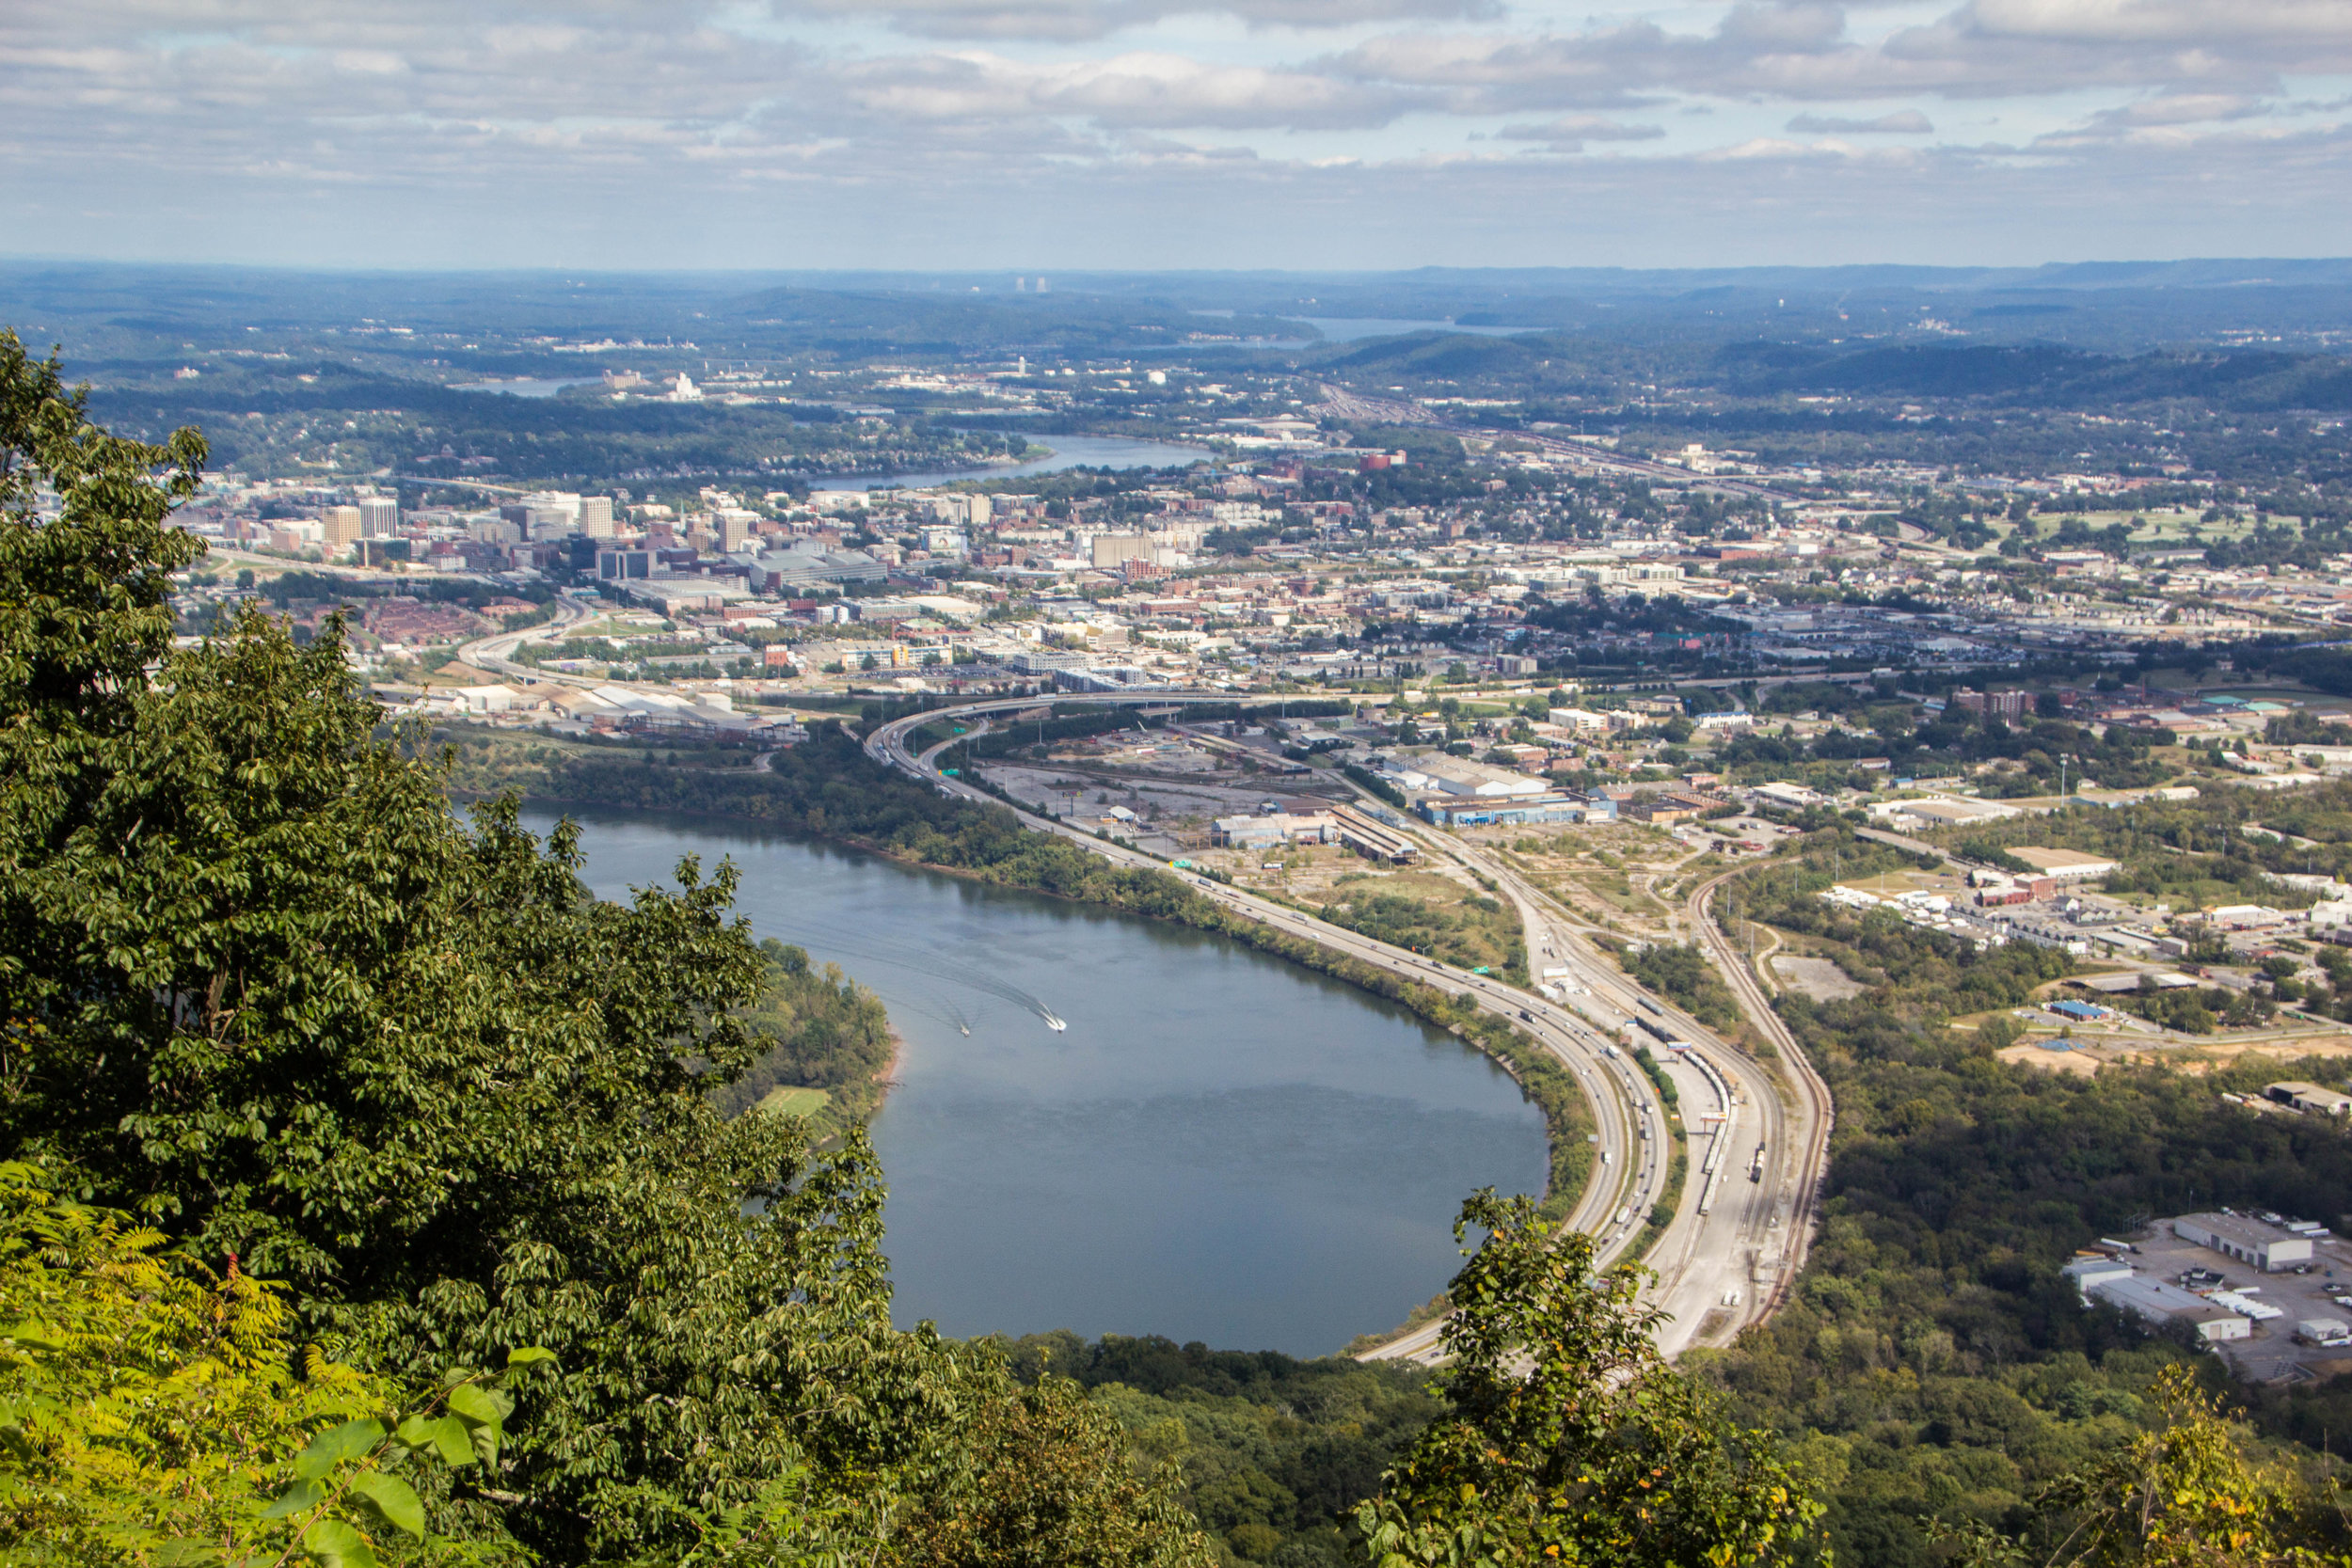 chattanooga-lookout-mountain-point-park-17.jpg